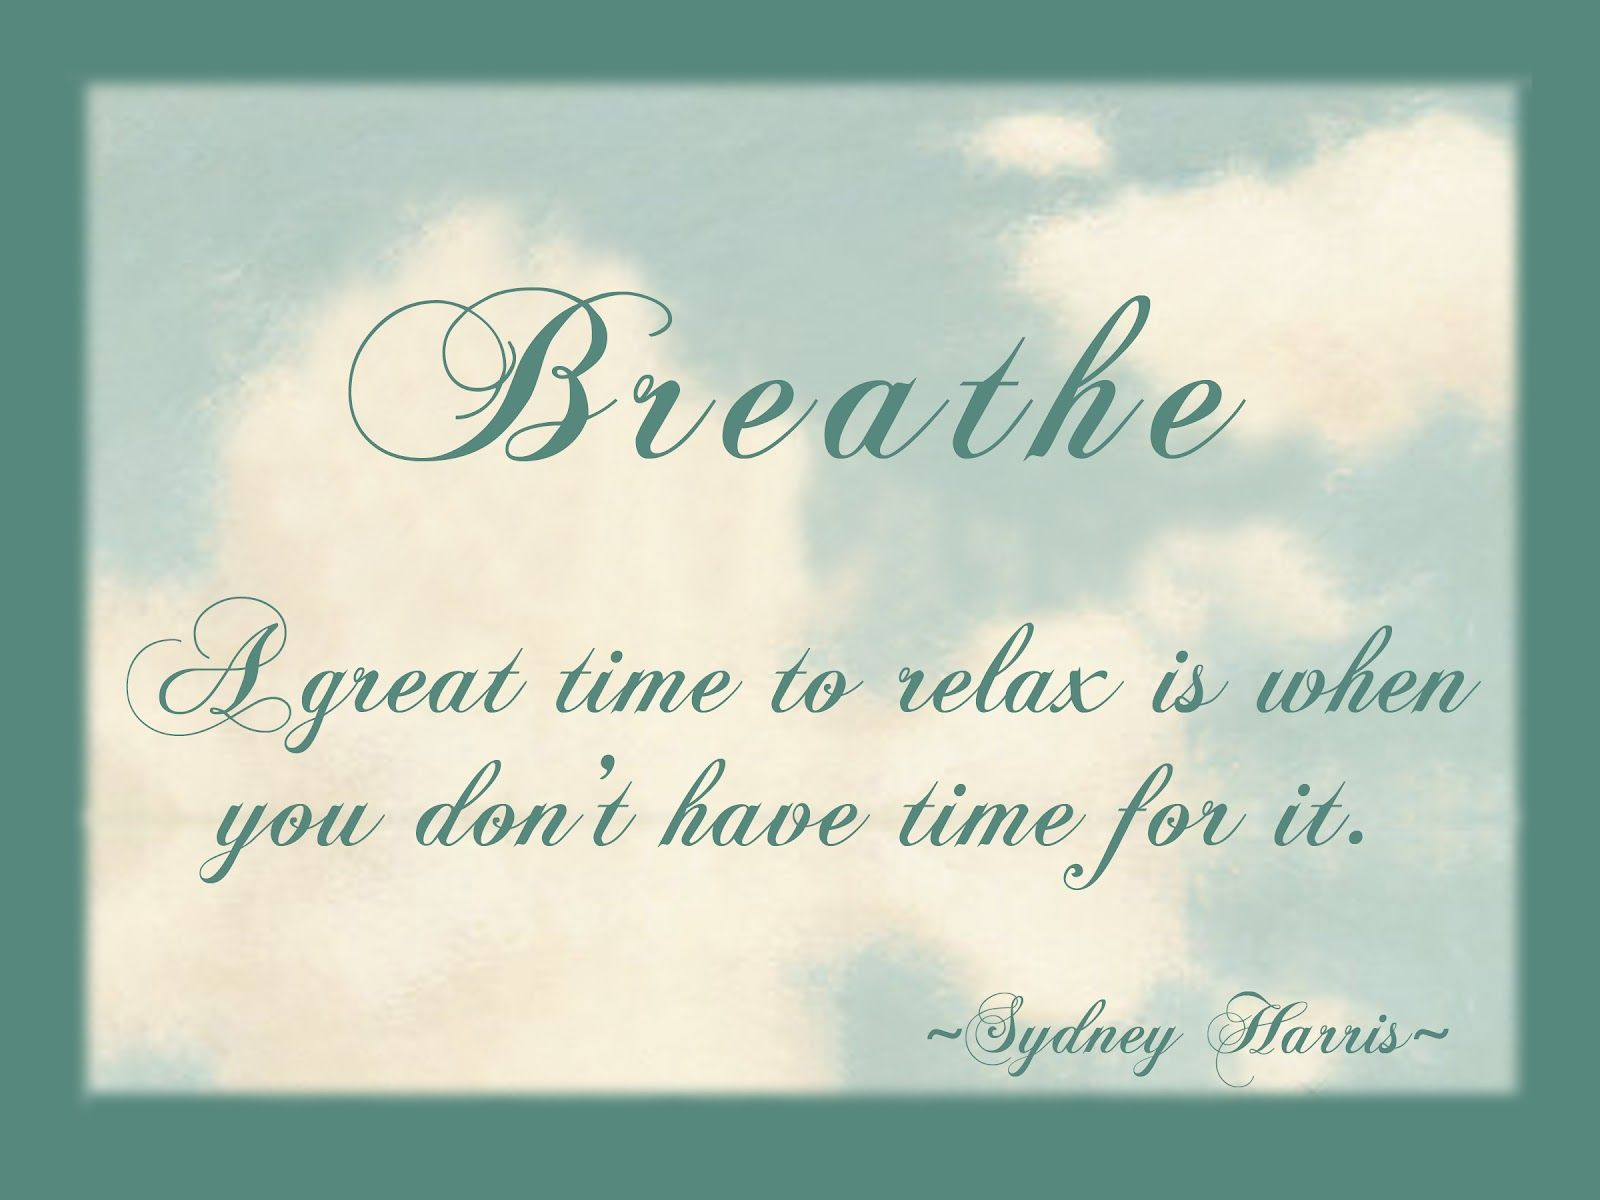 Breathe. A great time to relax is when you don't have time for it. http://fluidisometrics.com